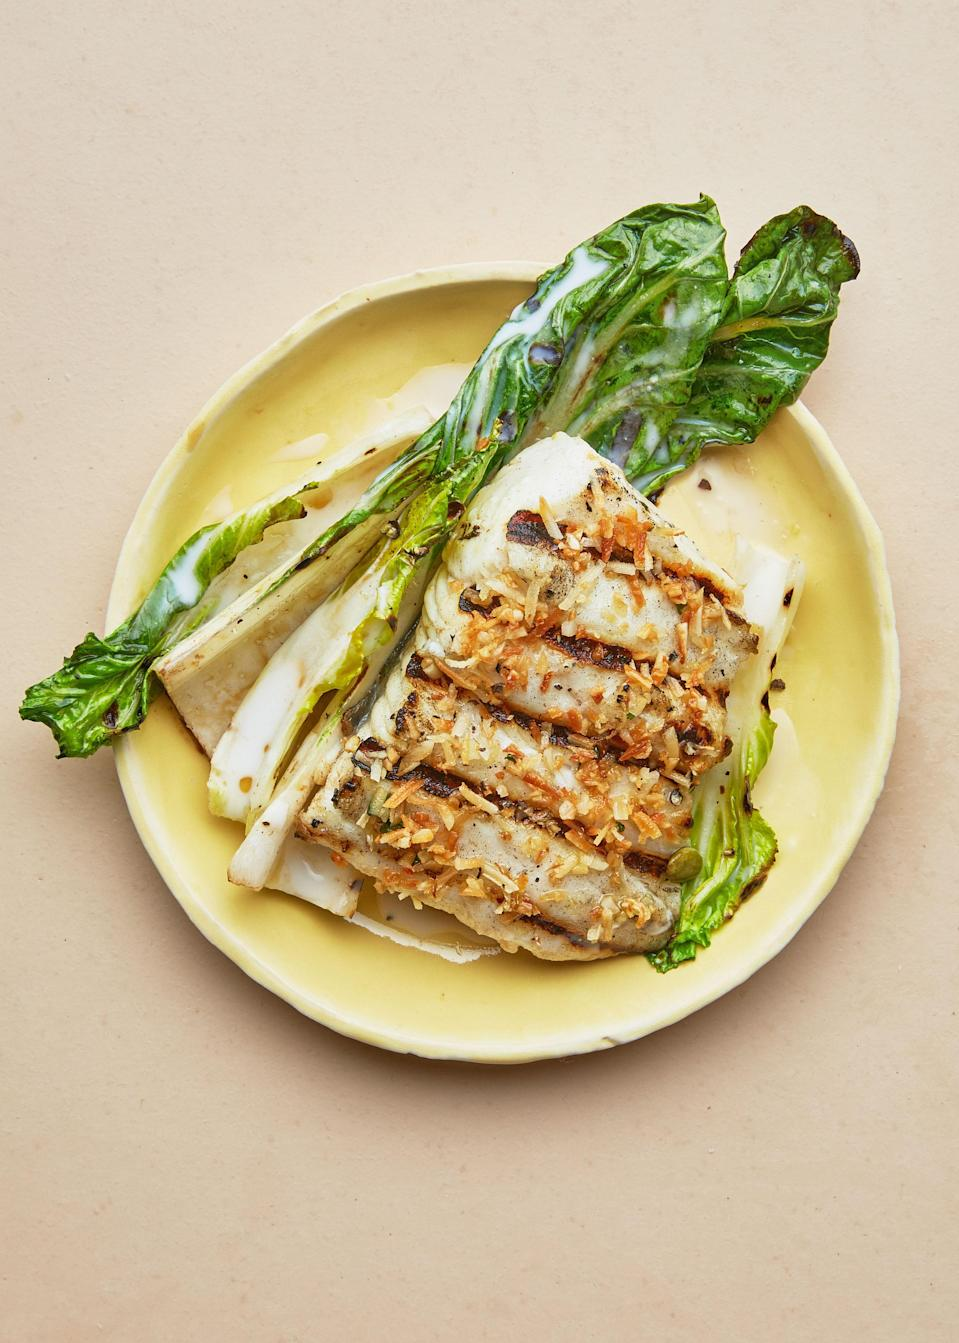 "<a href=""https://www.bonappetit.com/recipe/grilled-halibut-and-bok-choy-with-coconut-lime-dressing?mbid=synd_yahoo_rss"" rel=""nofollow noopener"" target=""_blank"" data-ylk=""slk:See recipe."" class=""link rapid-noclick-resp"">See recipe.</a>"